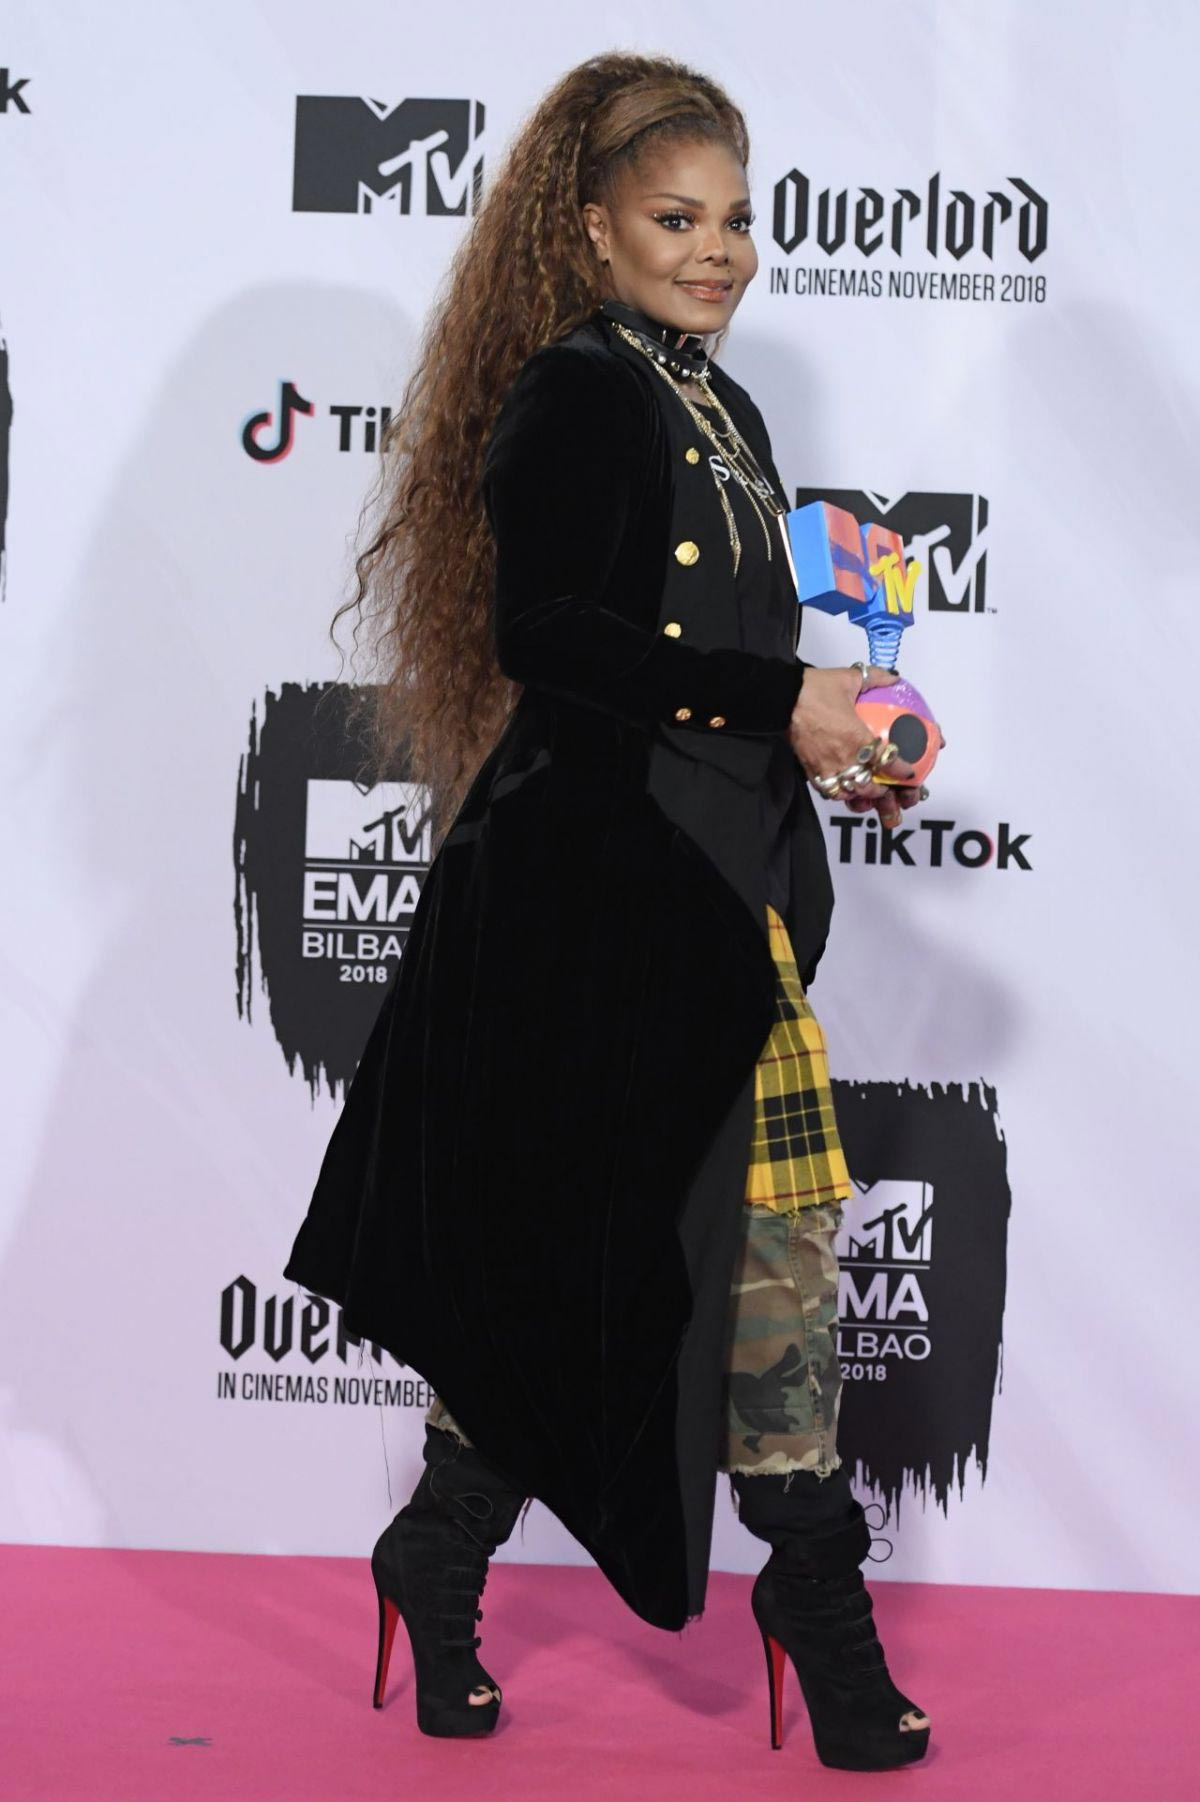 Janet Jackson at MTV European Music Awards 2018 in Bilbao 2018/11/04 1